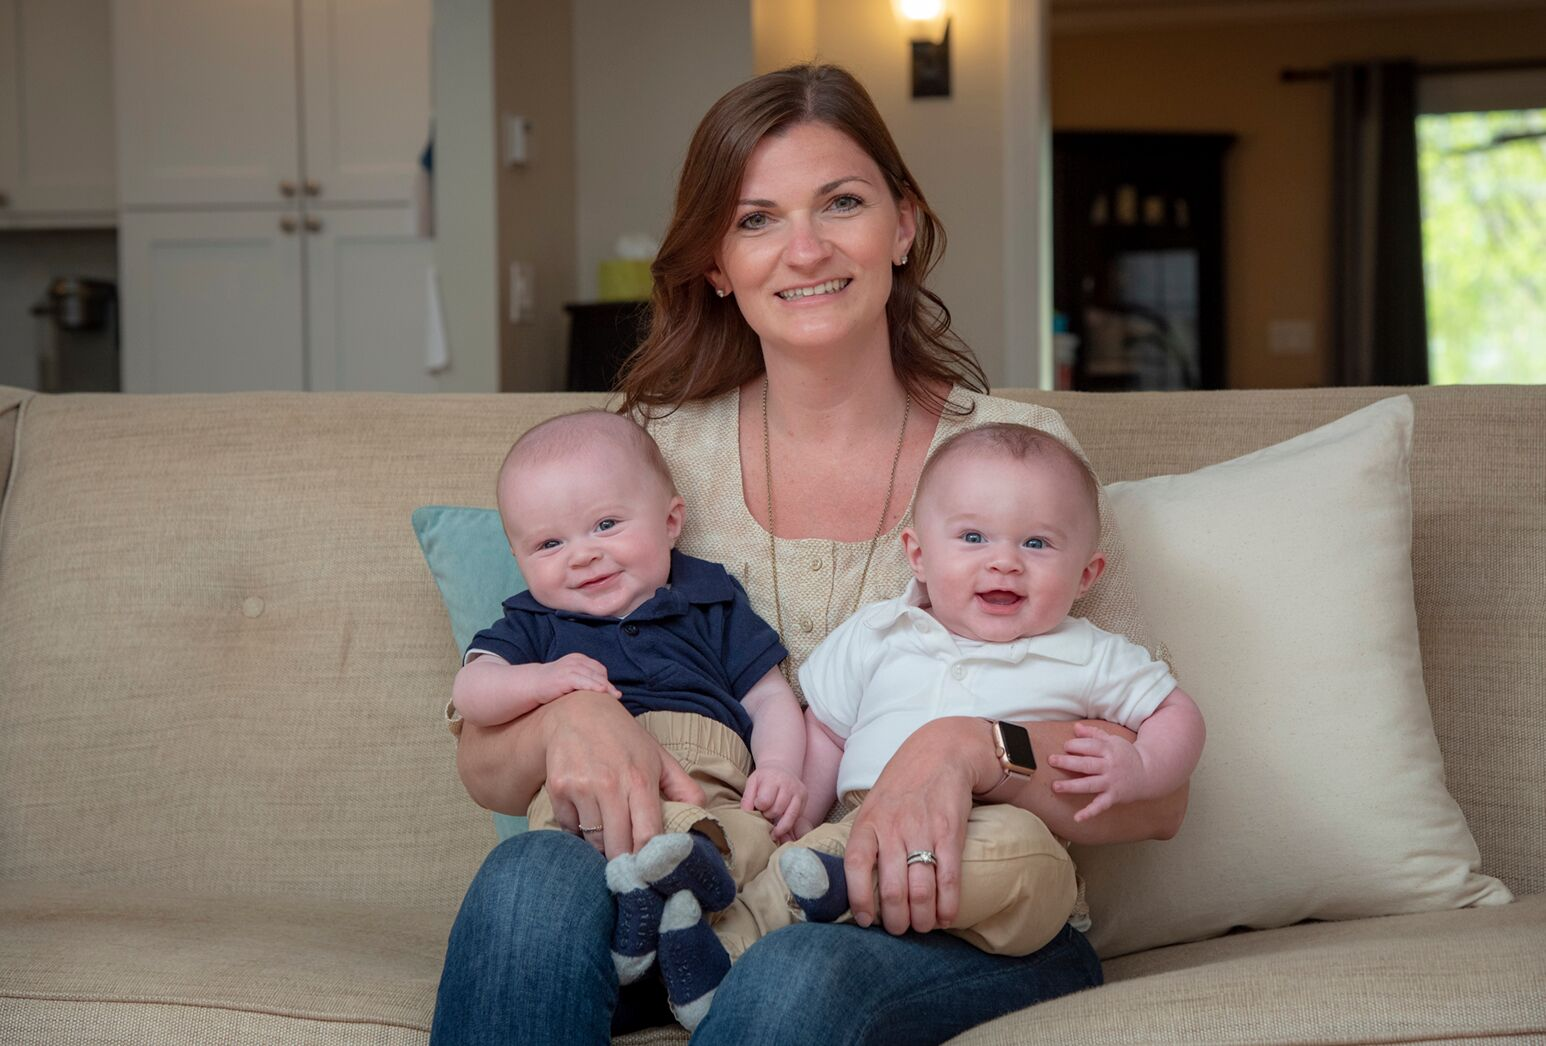 Mother sitting on a couch holding her twin baby boys.